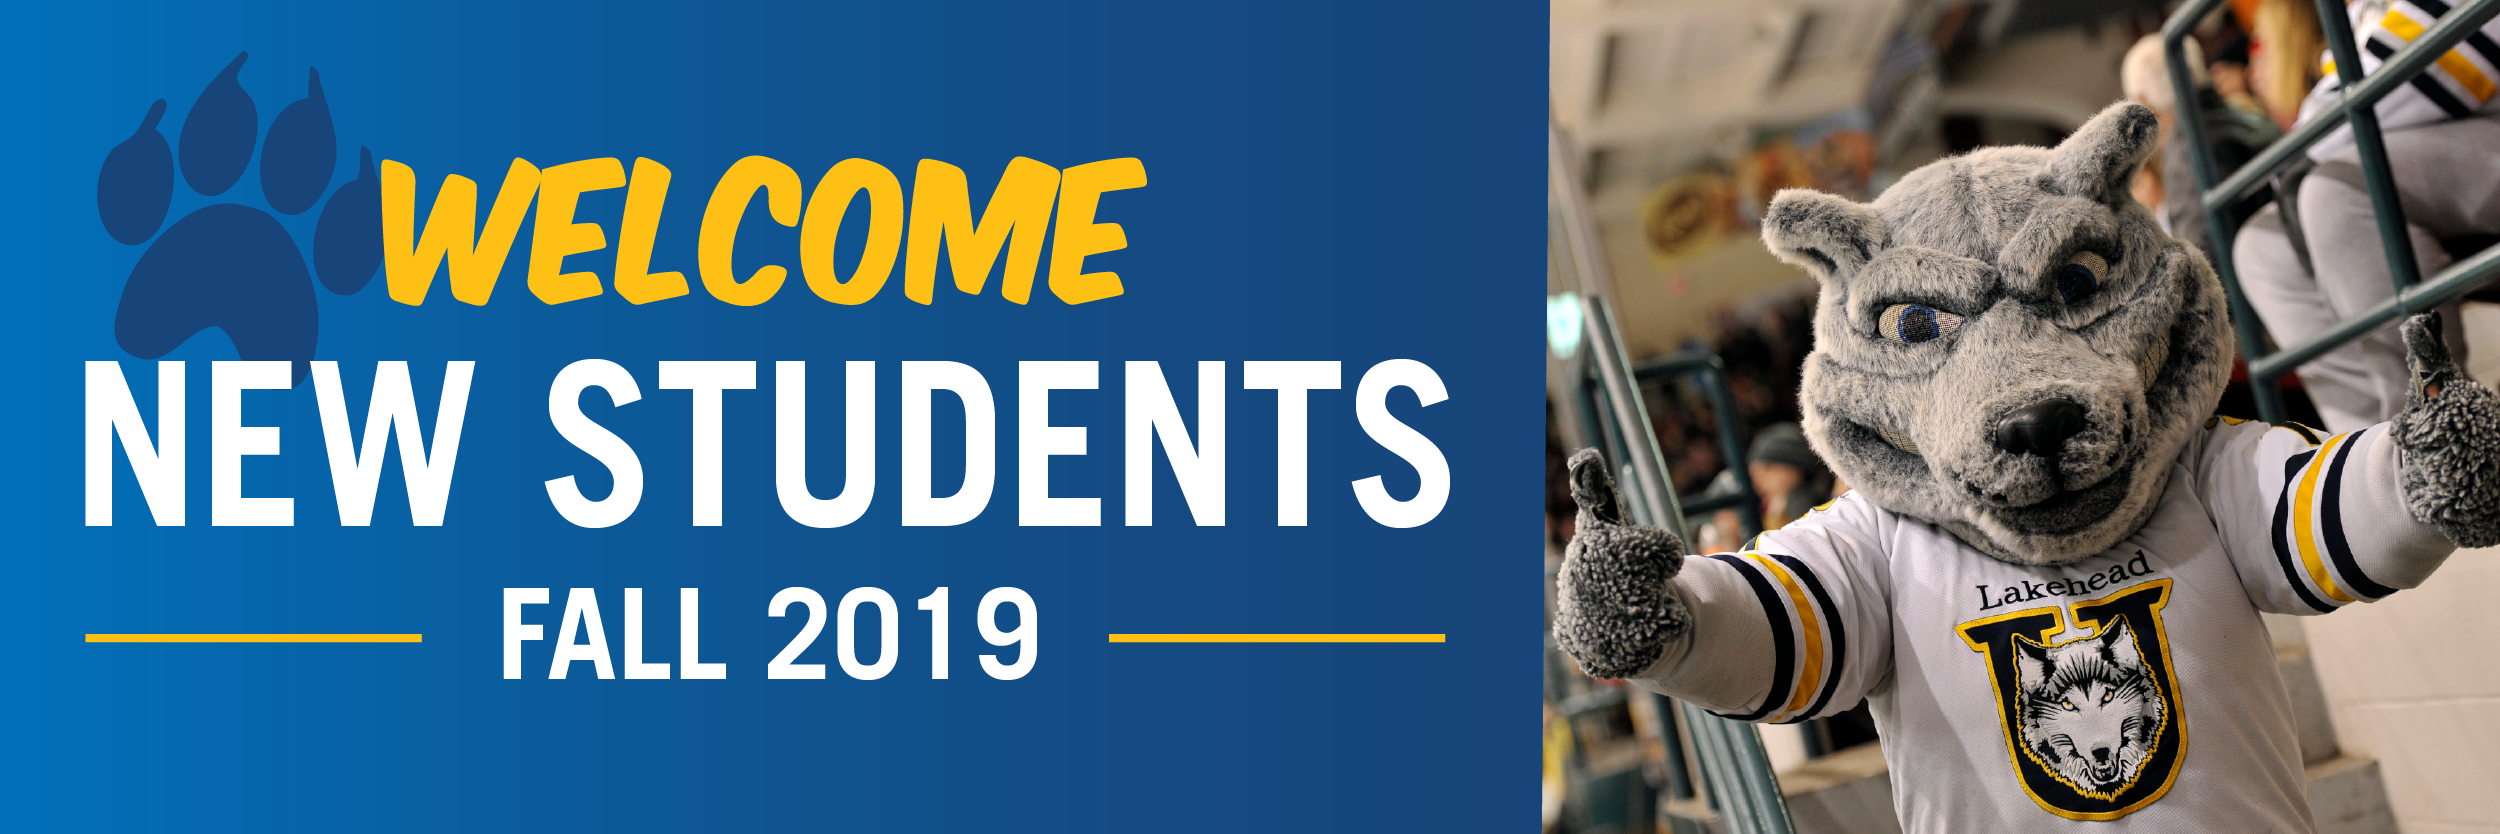 Welcome New Student banner